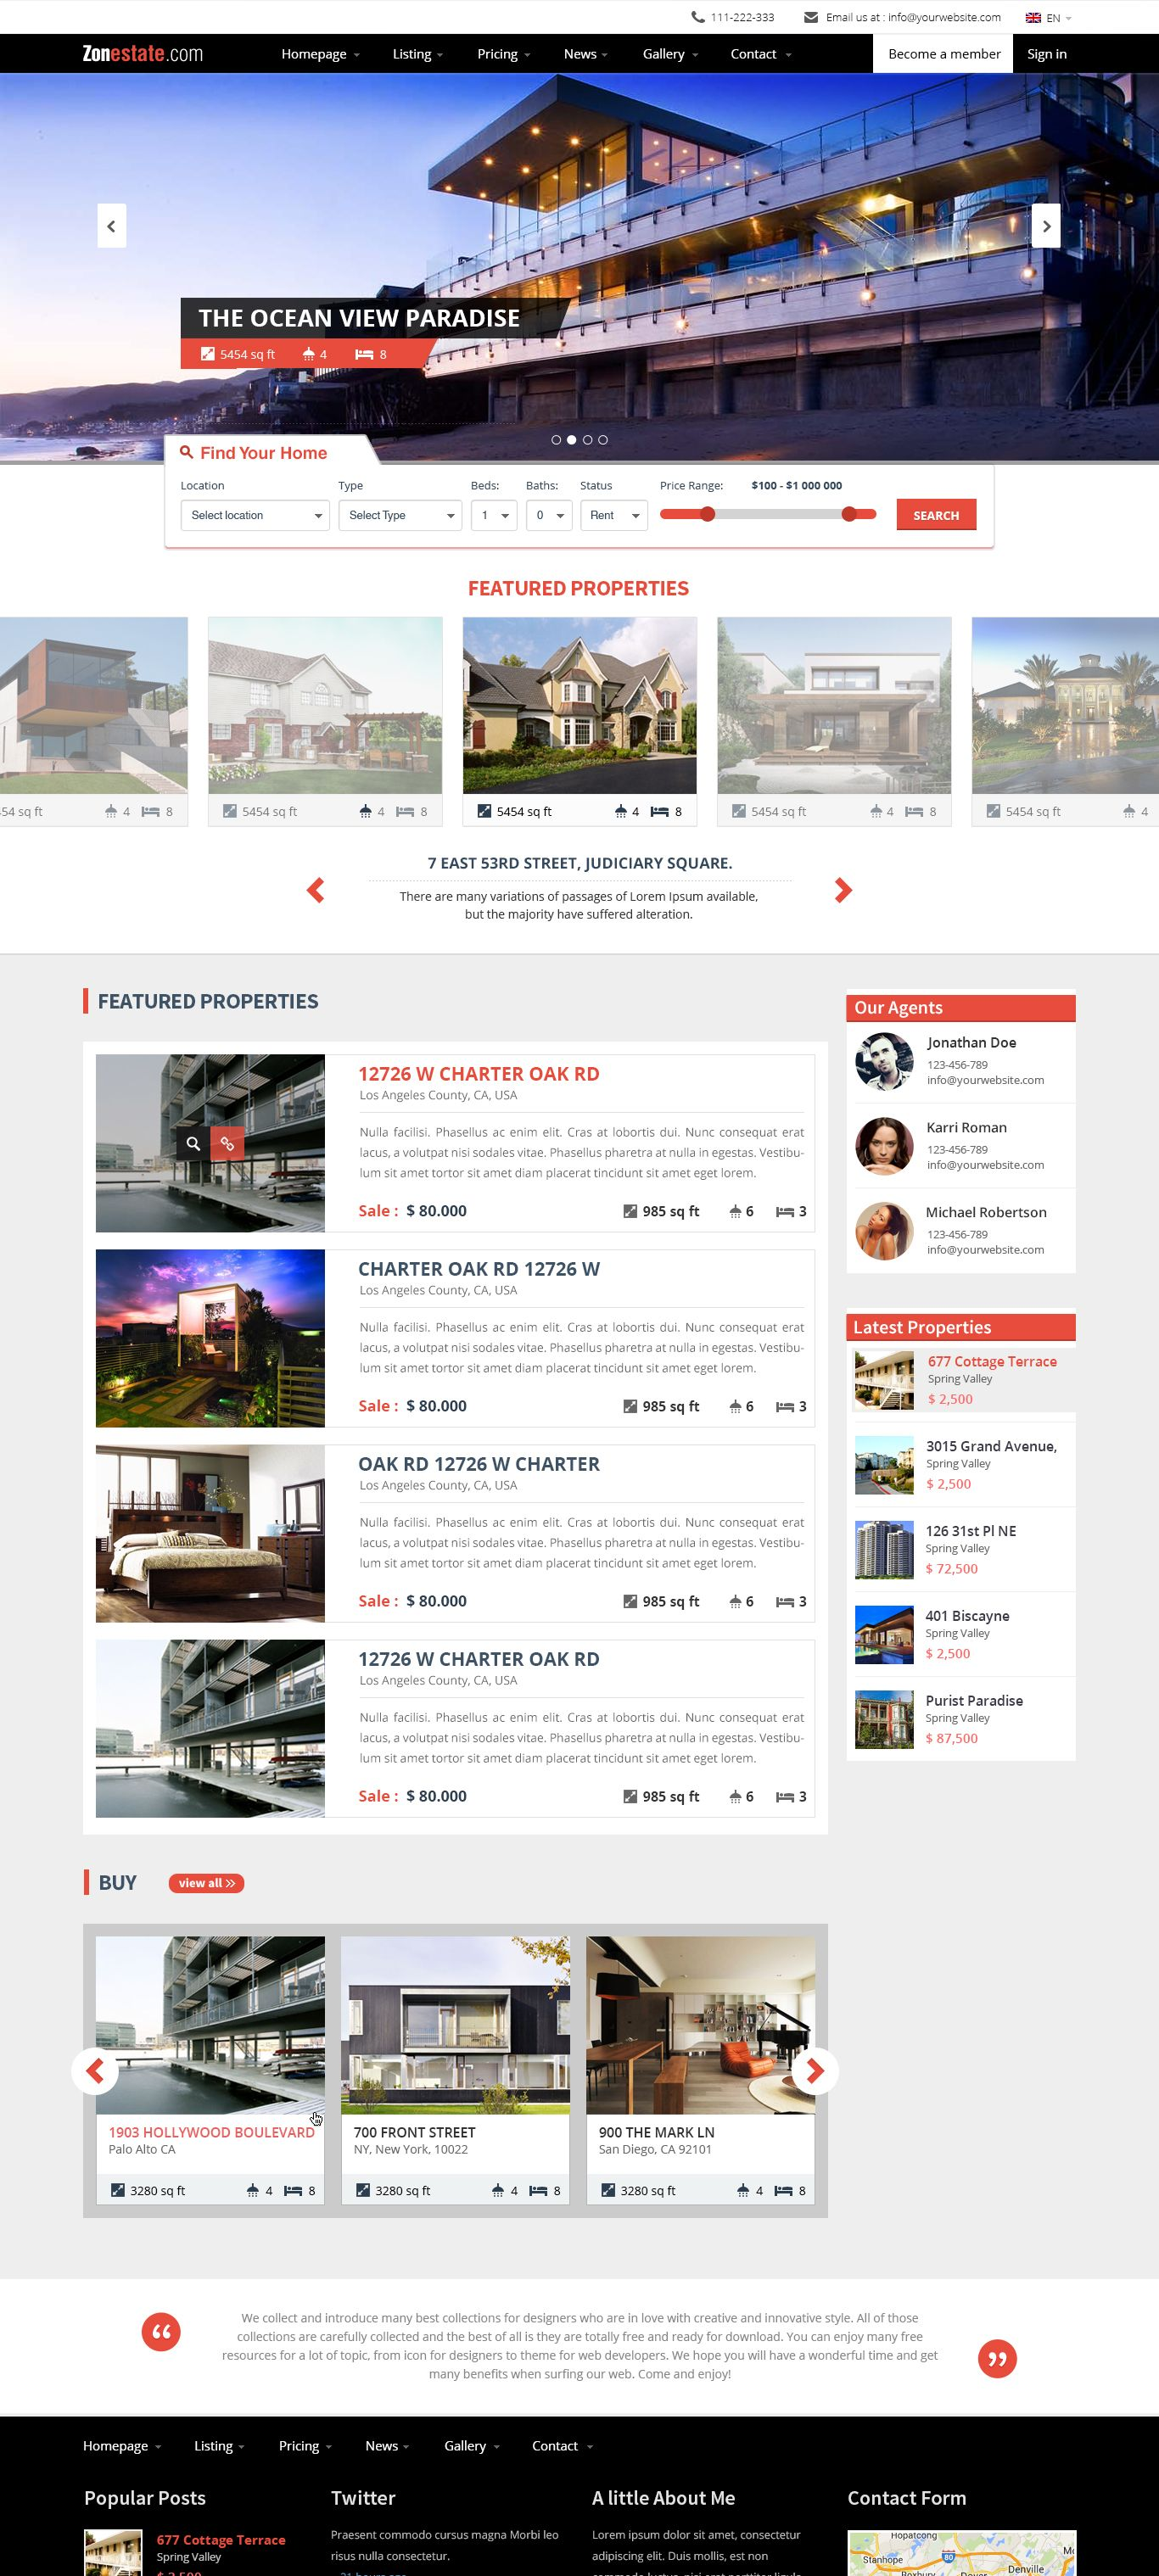 Real Estate Website Template Image Pinterest Real Estate